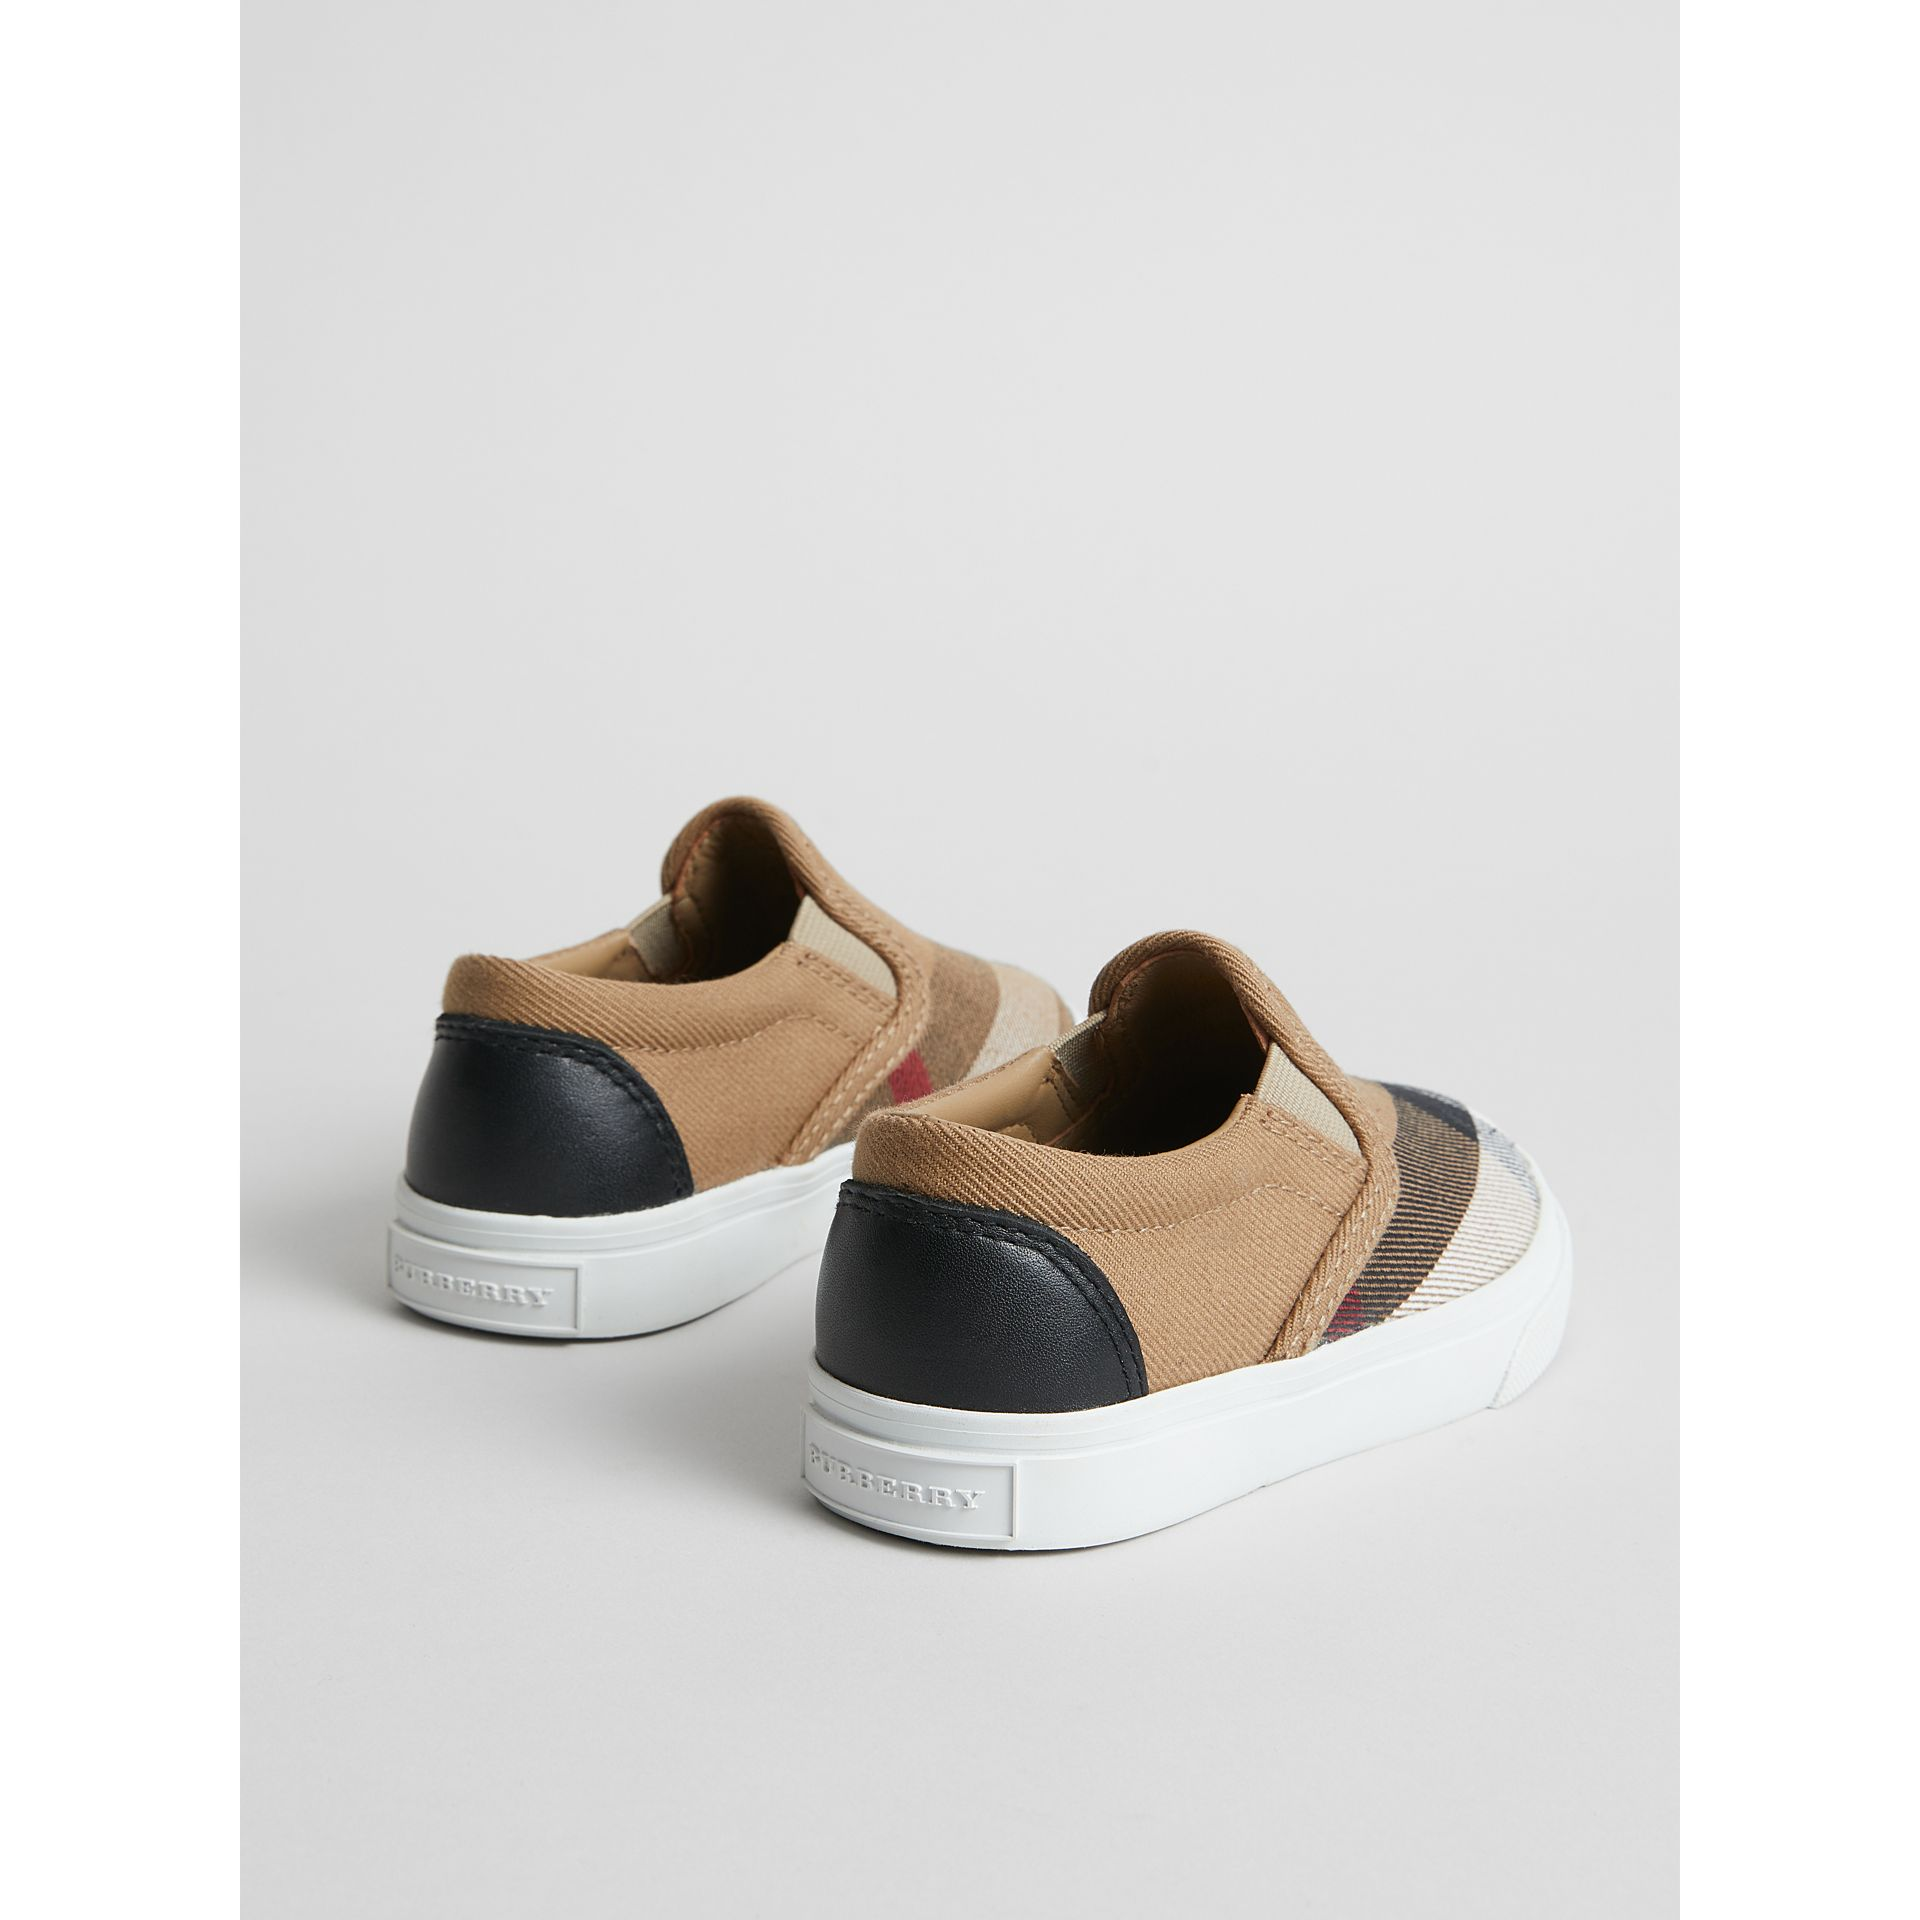 House Check and Leather Slip-on Sneakers in Classic/optic White | Burberry United States - gallery image 2